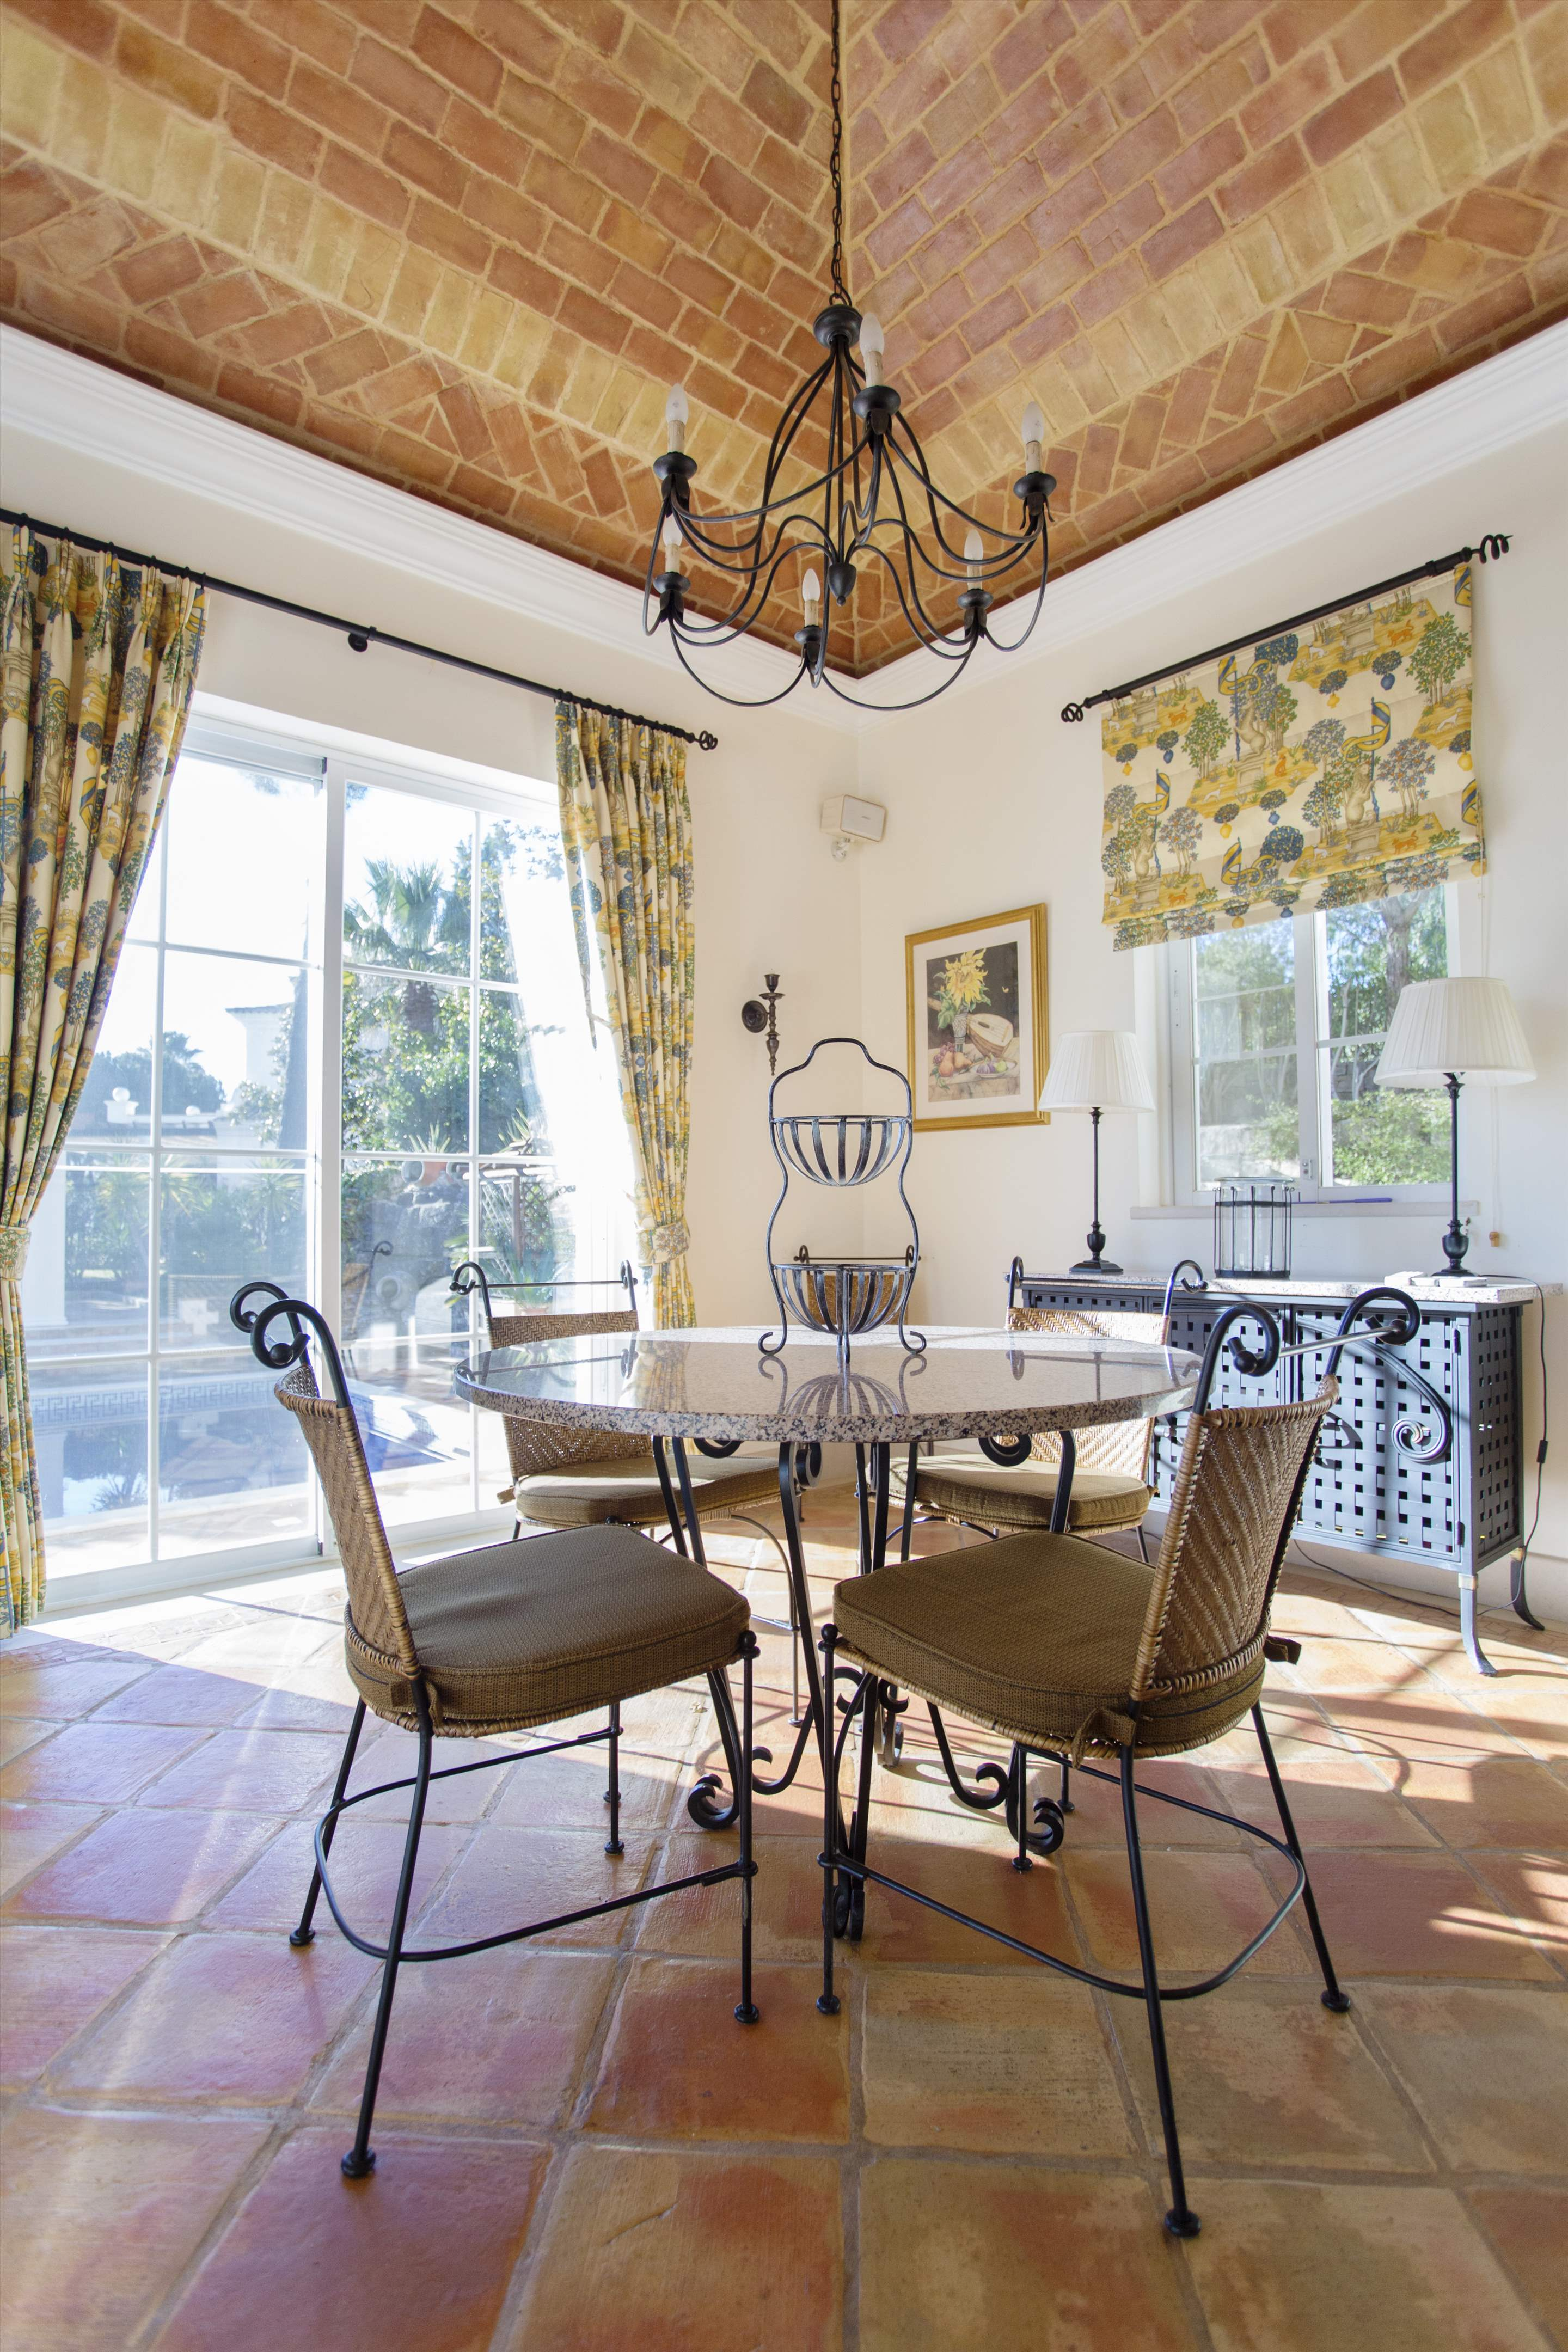 Villa Palmeiras Altas, 5 bedroom villa in Quinta do Lago, Algarve Photo #17